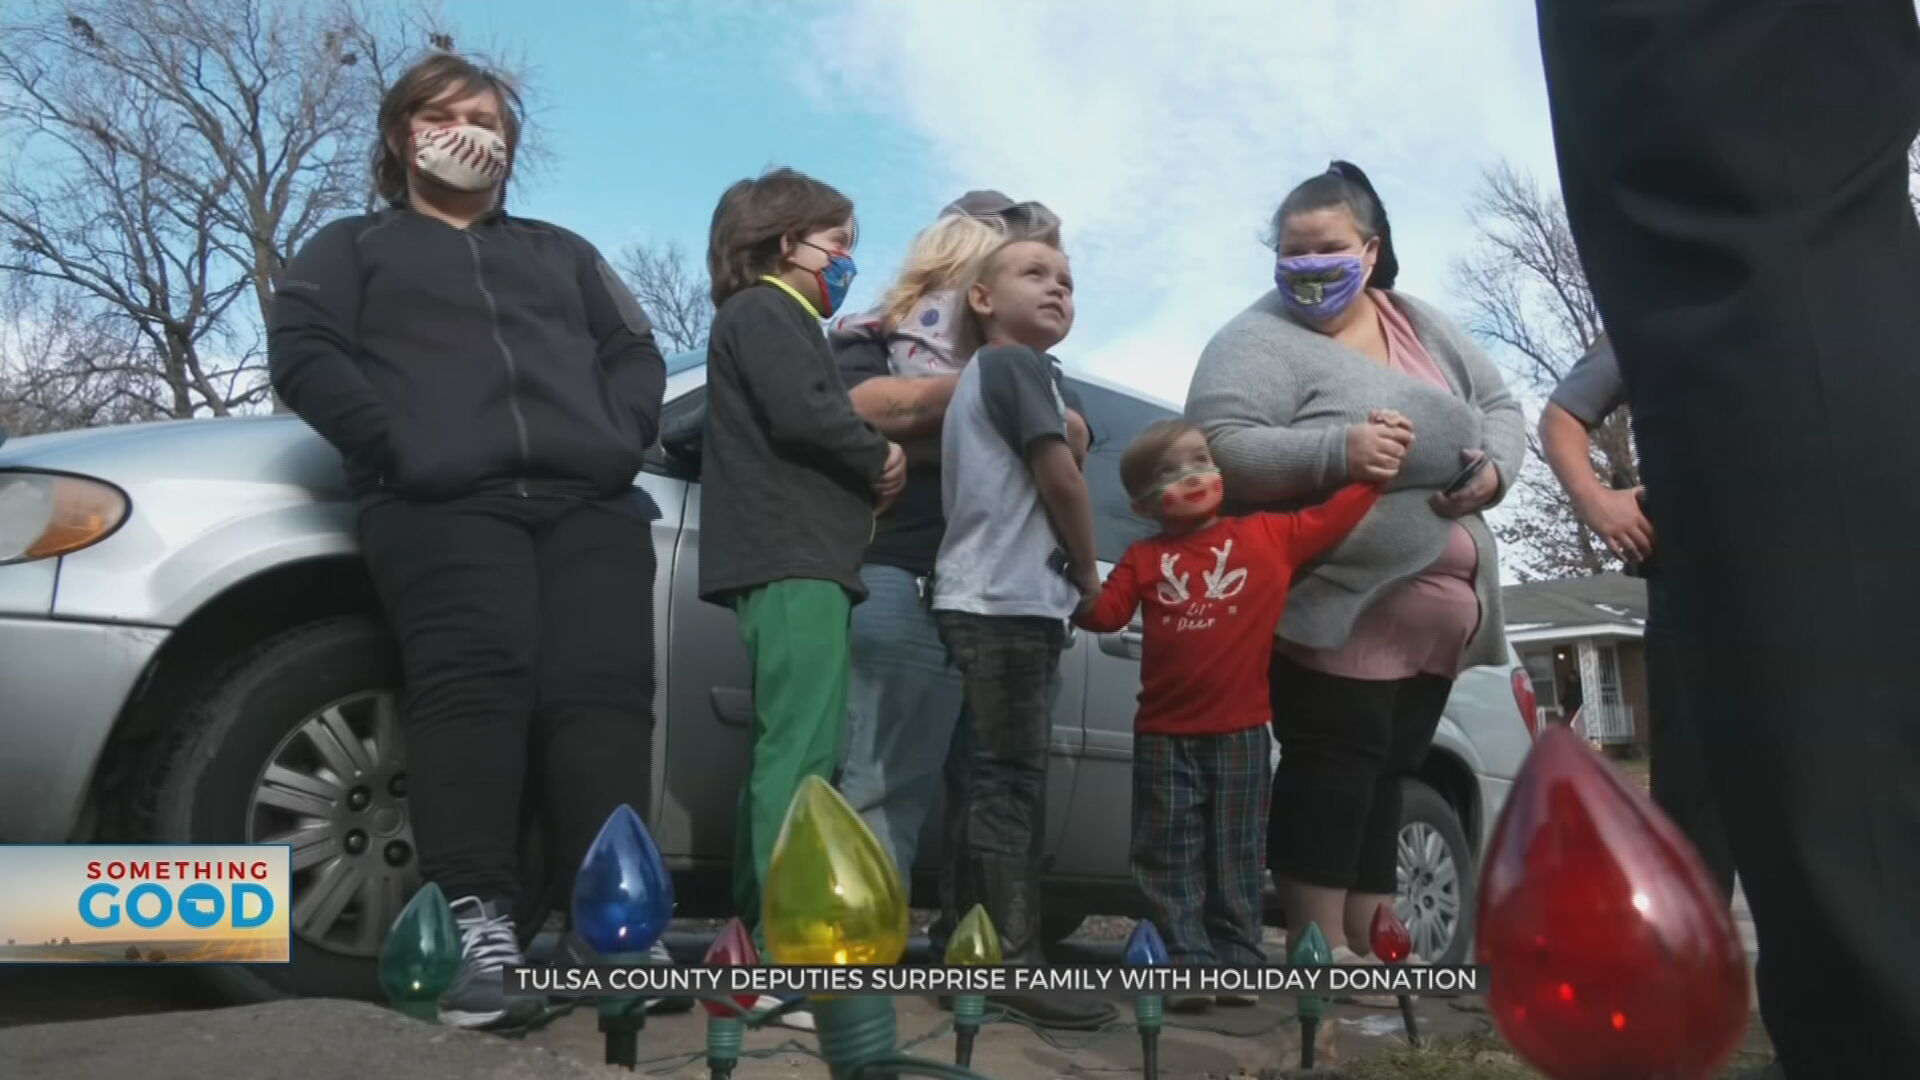 Family Of 7 Surprised With Holiday Donation From Tulsa County Deputies